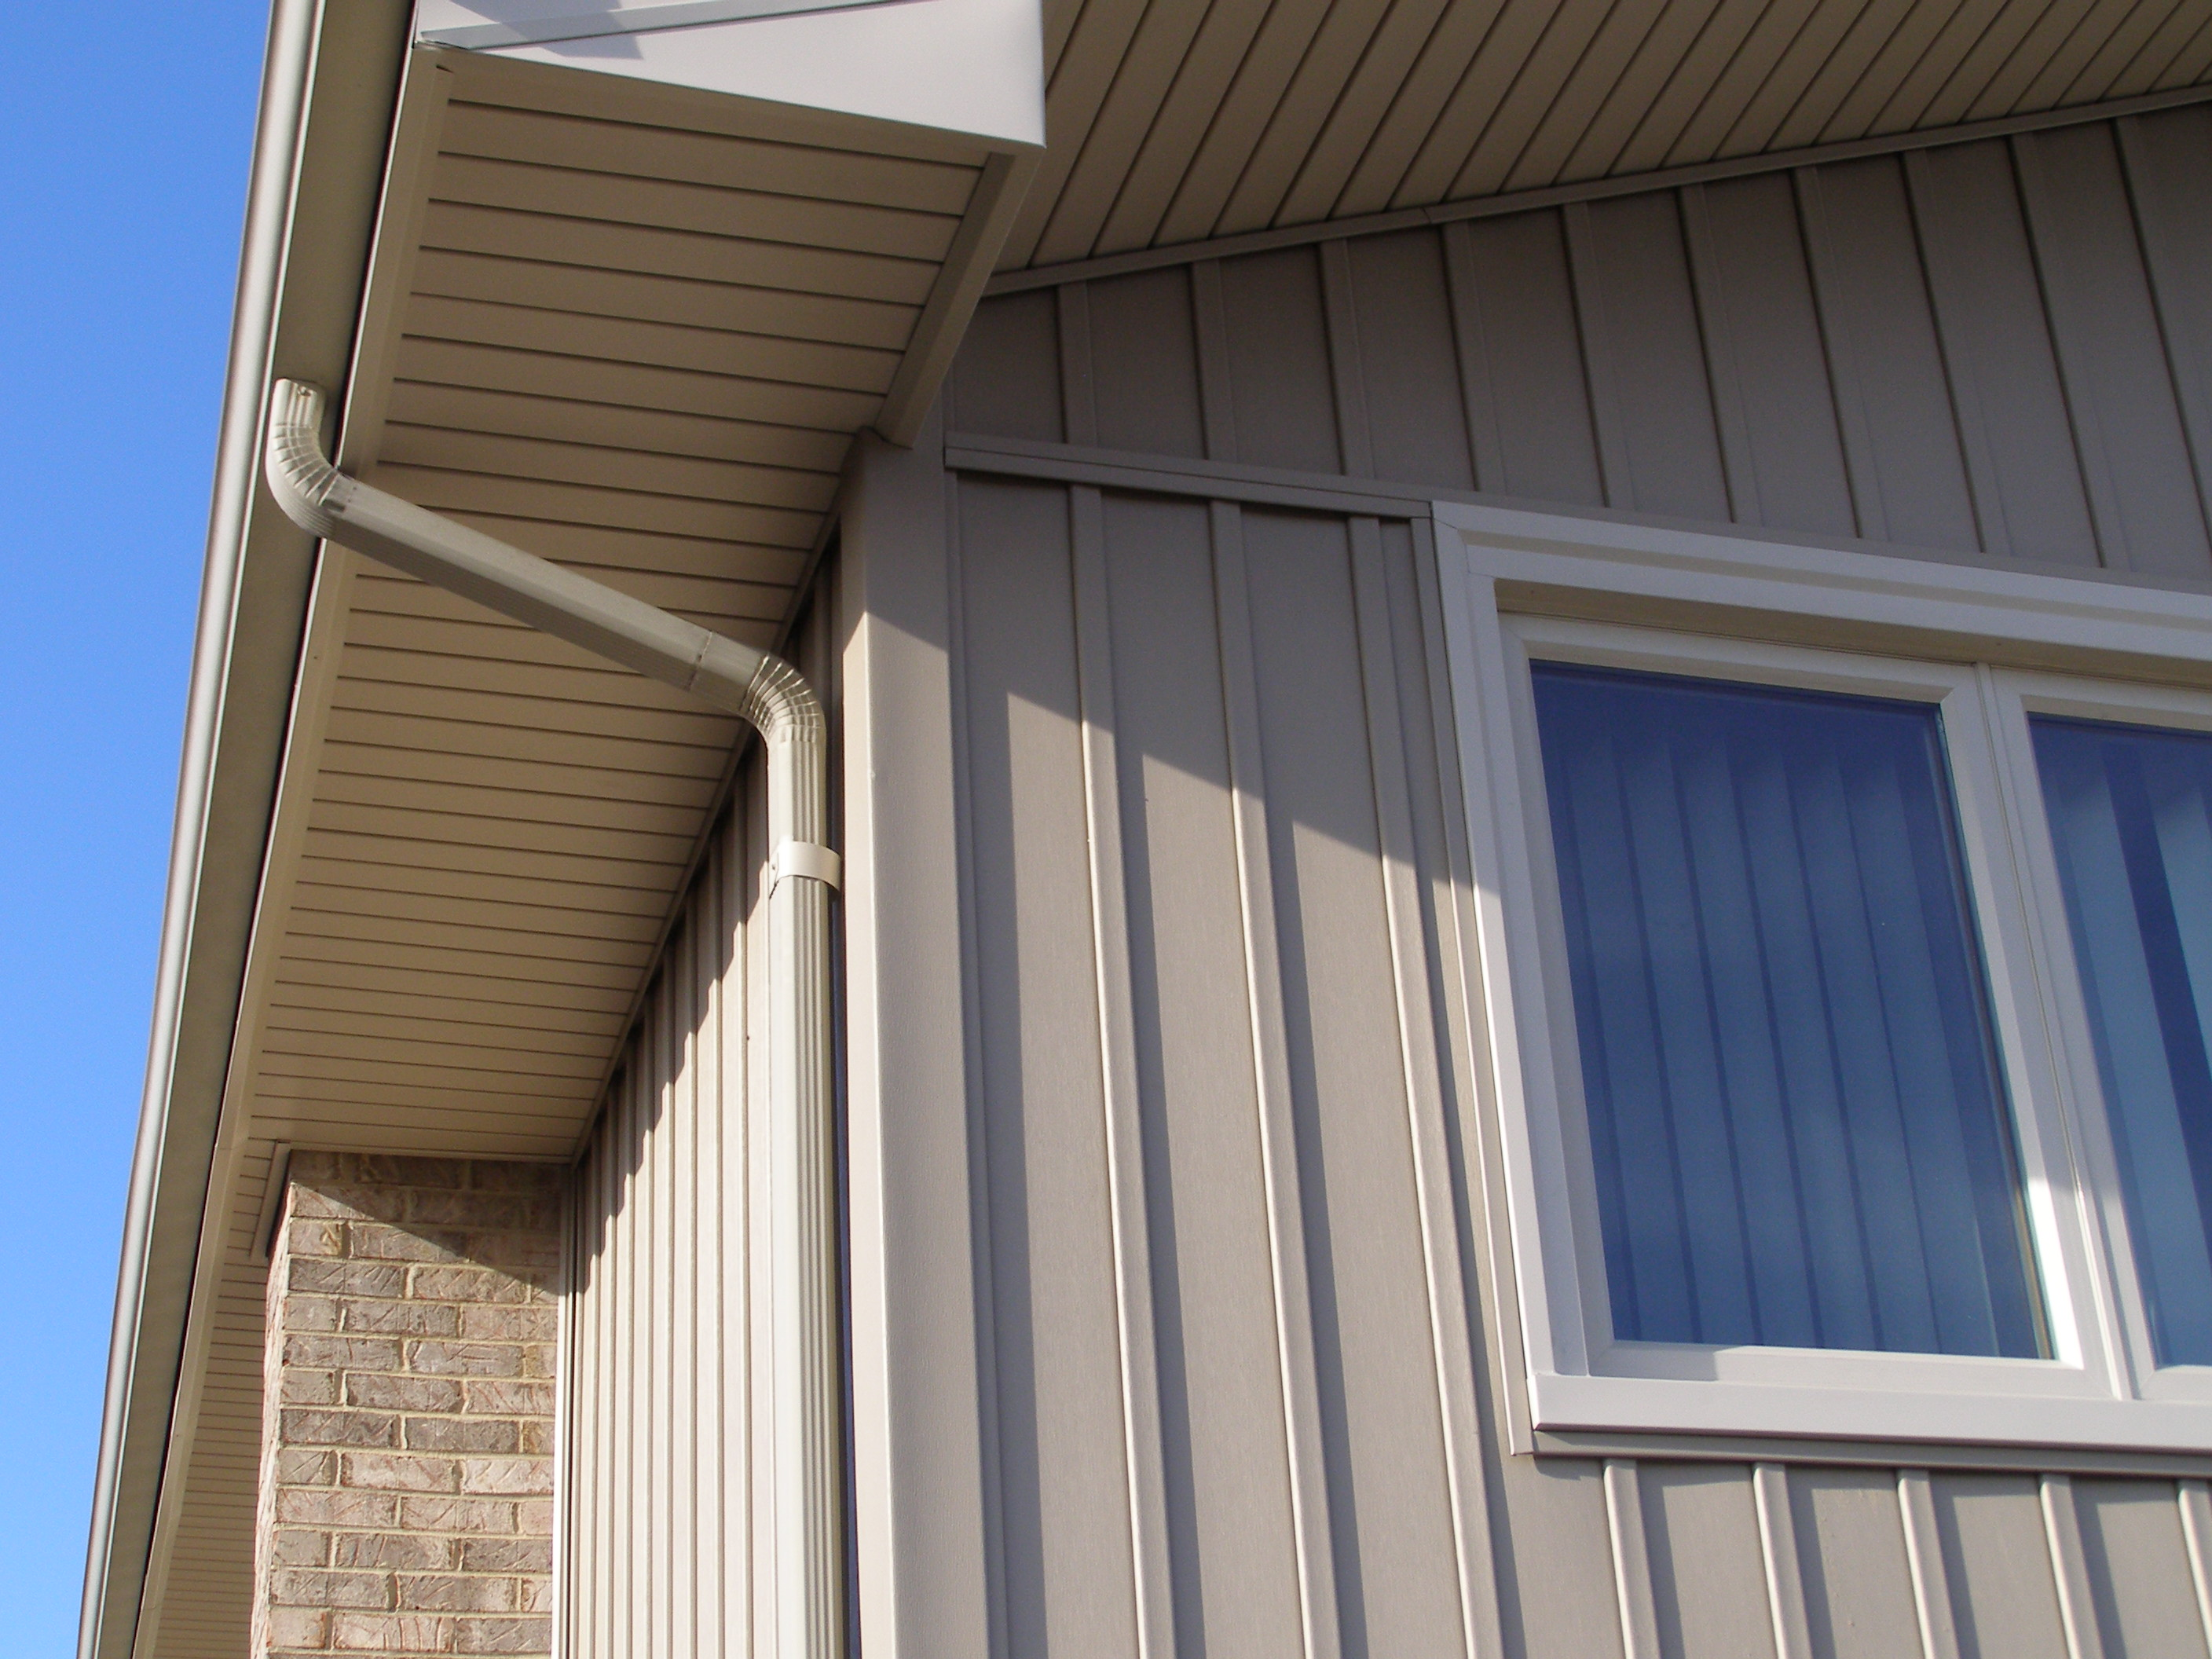 Board batten vertical siding siding windows roofing for Vertical siding options